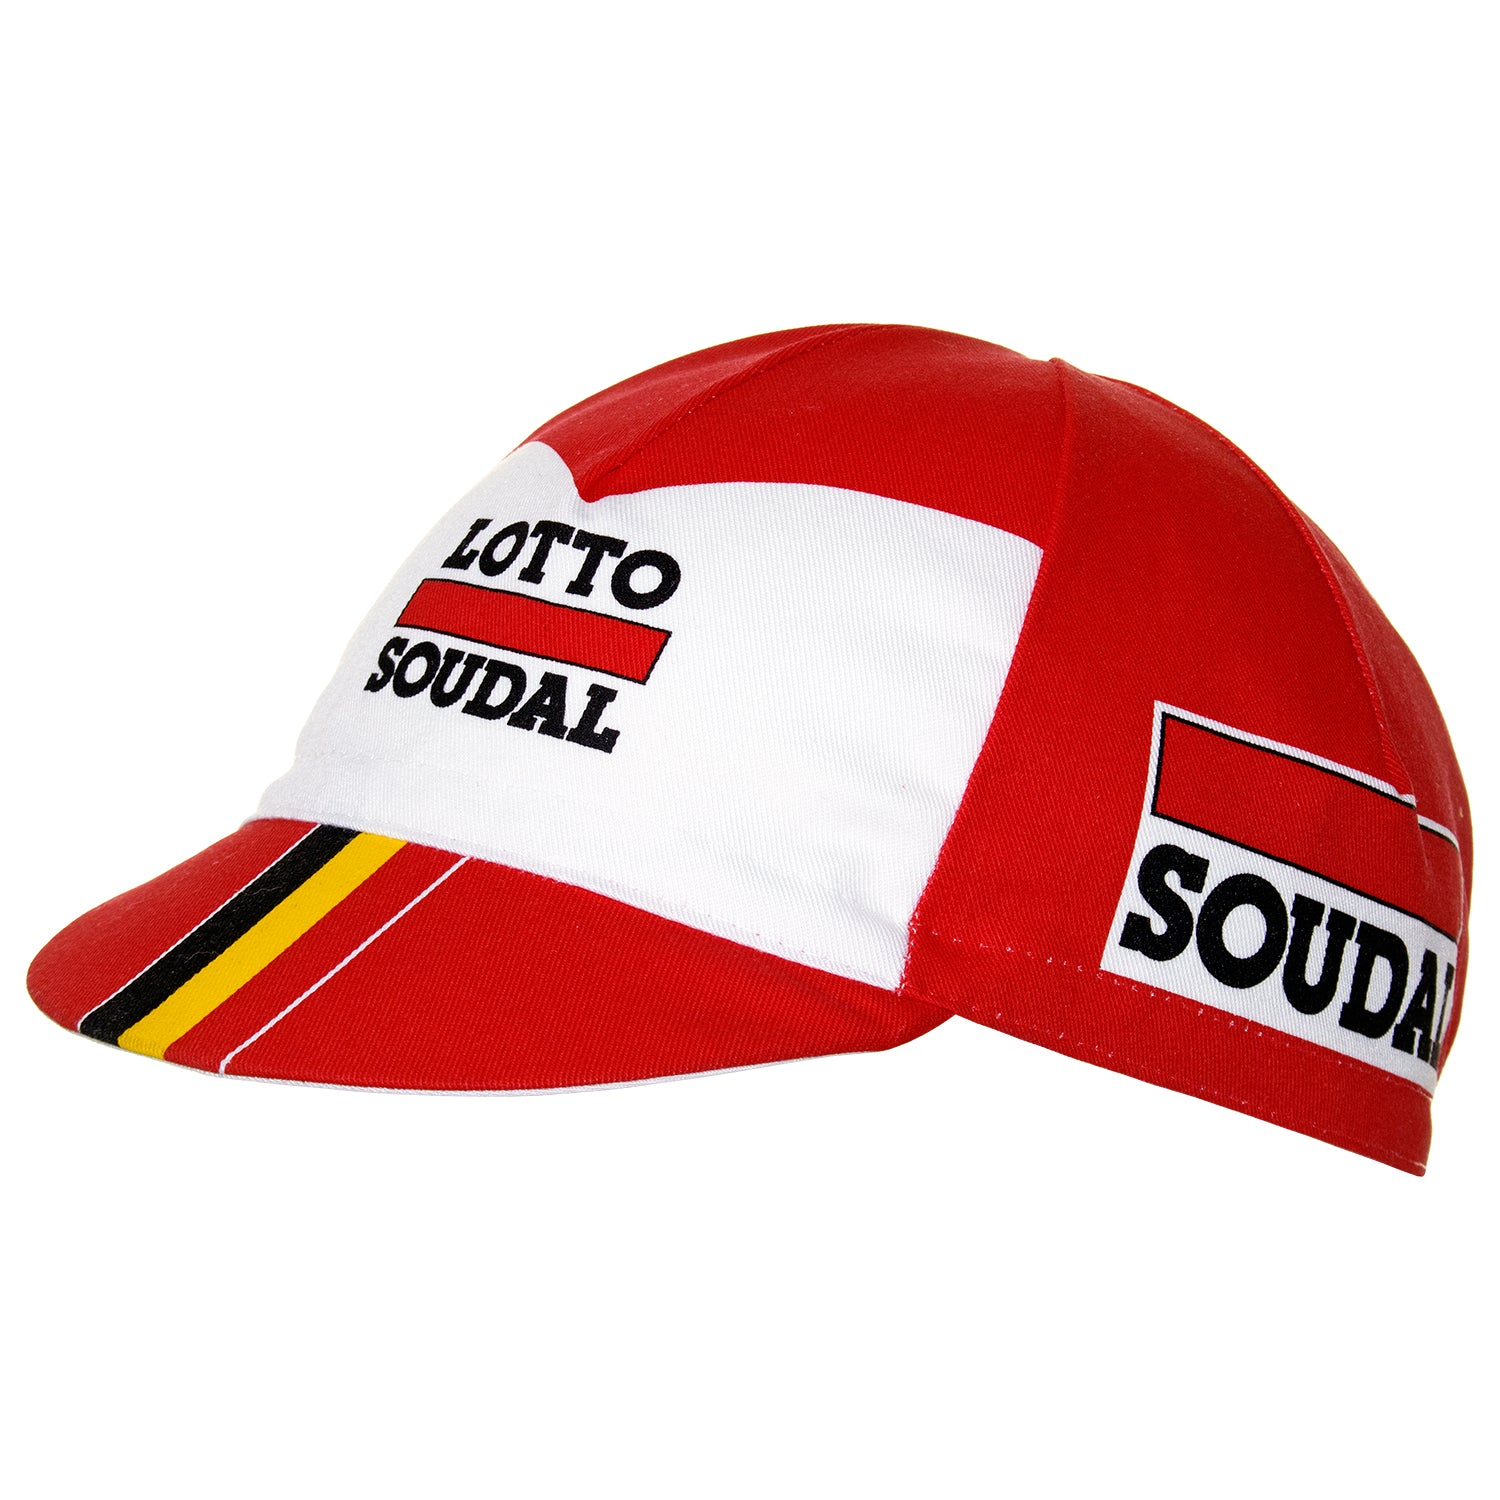 Lotto Soudal 2016 Cotton Cycling Cap | Headwear